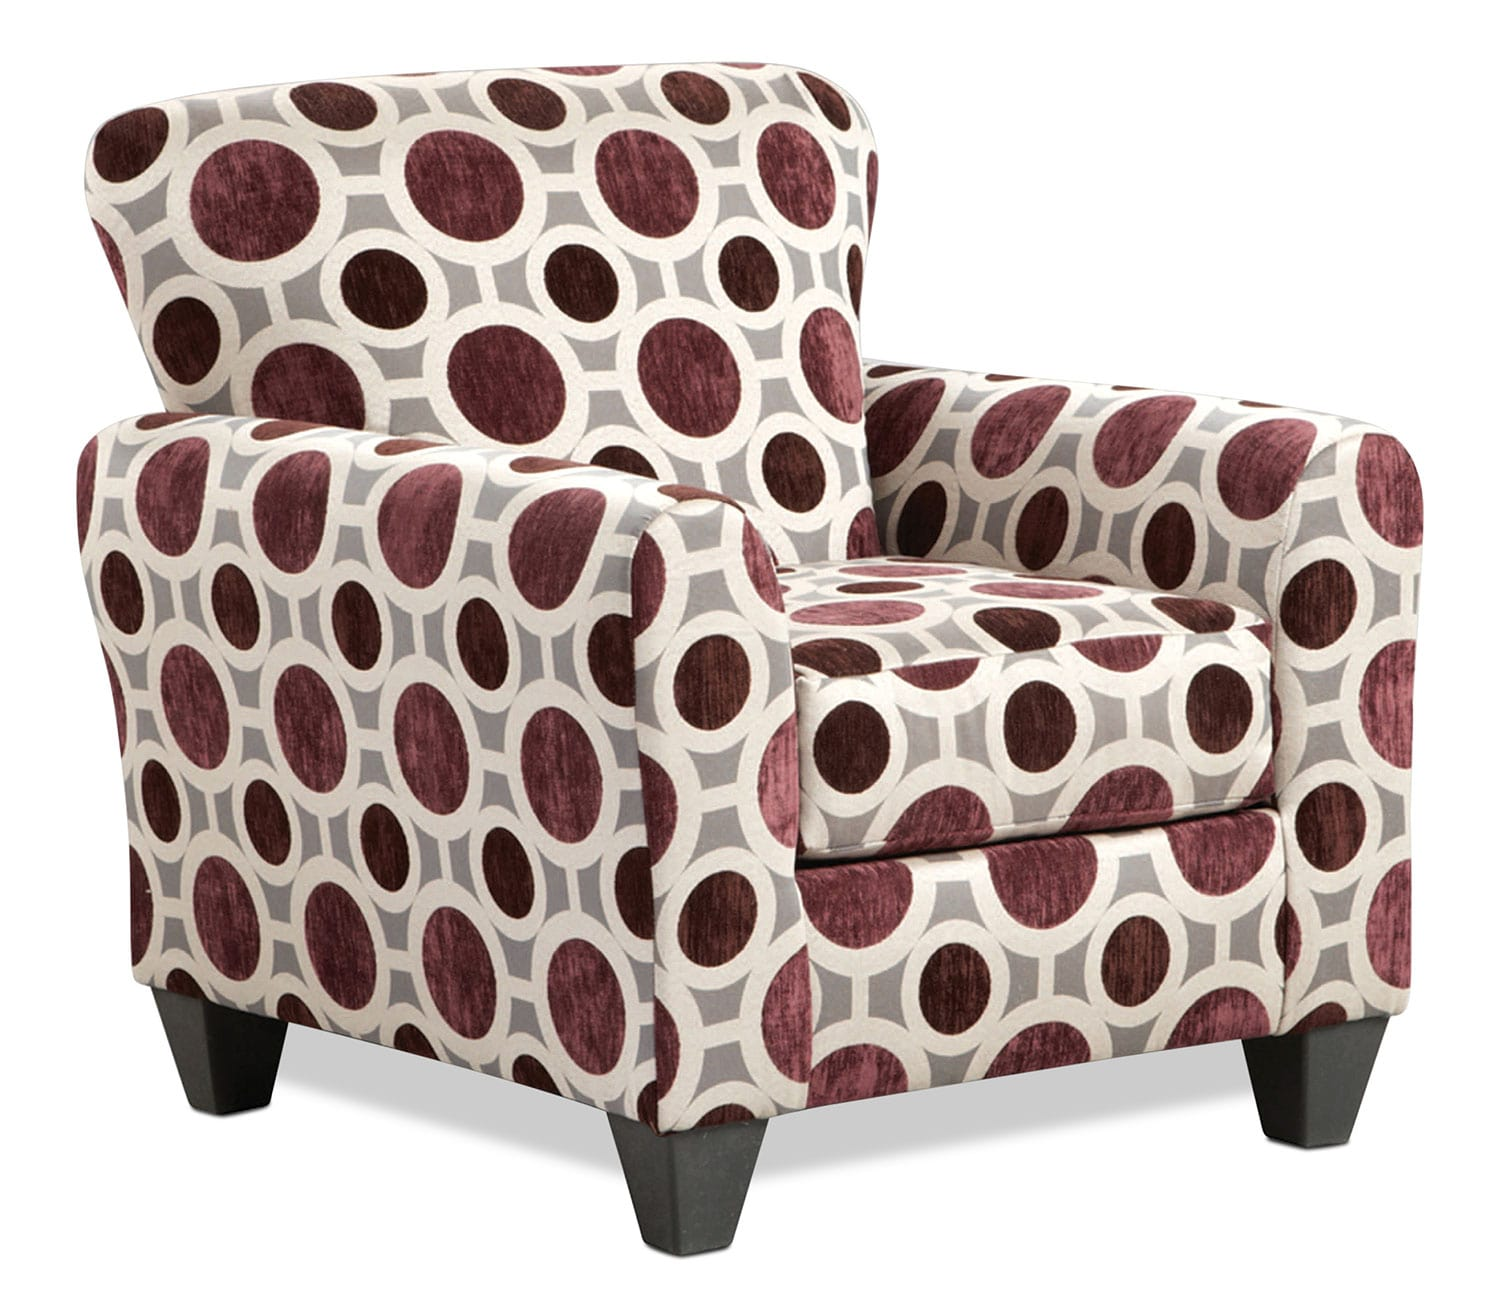 Roseville Accent Chair - Geometric Mulberry